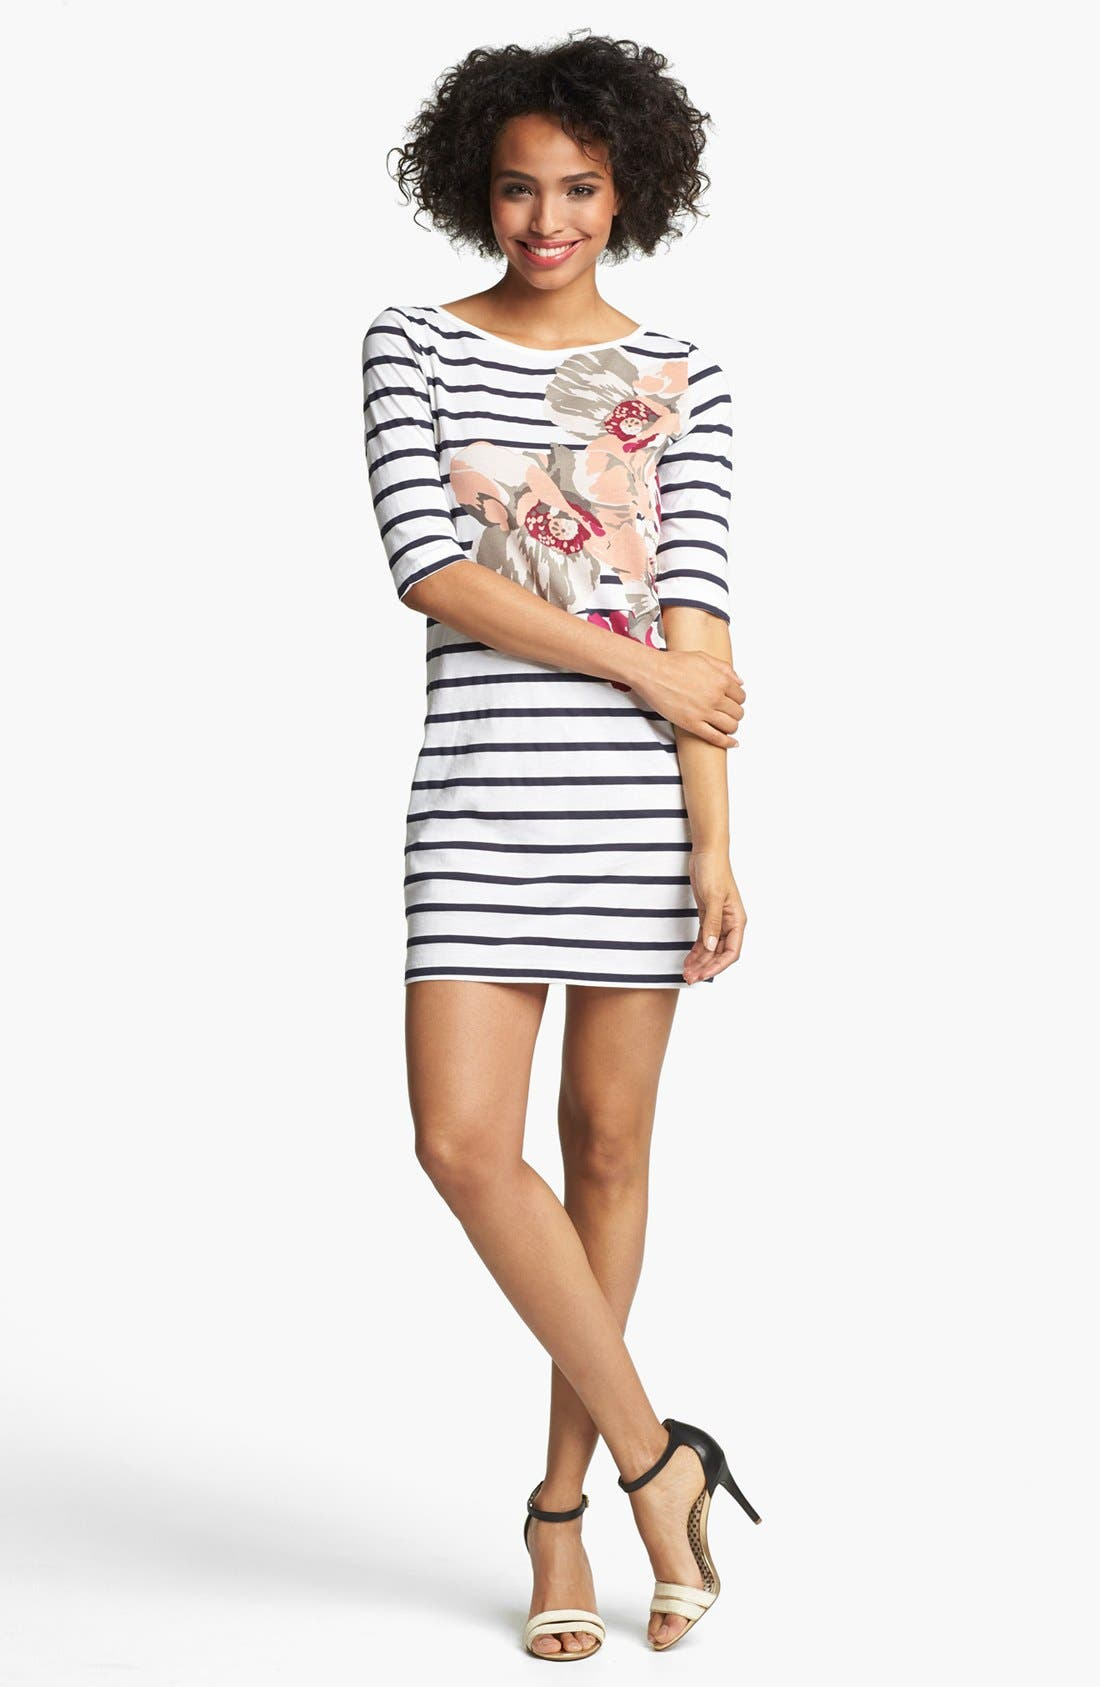 Alternate Image 1 Selected - French Connection 'Pixie' Graphic Stripe Cotton Dress